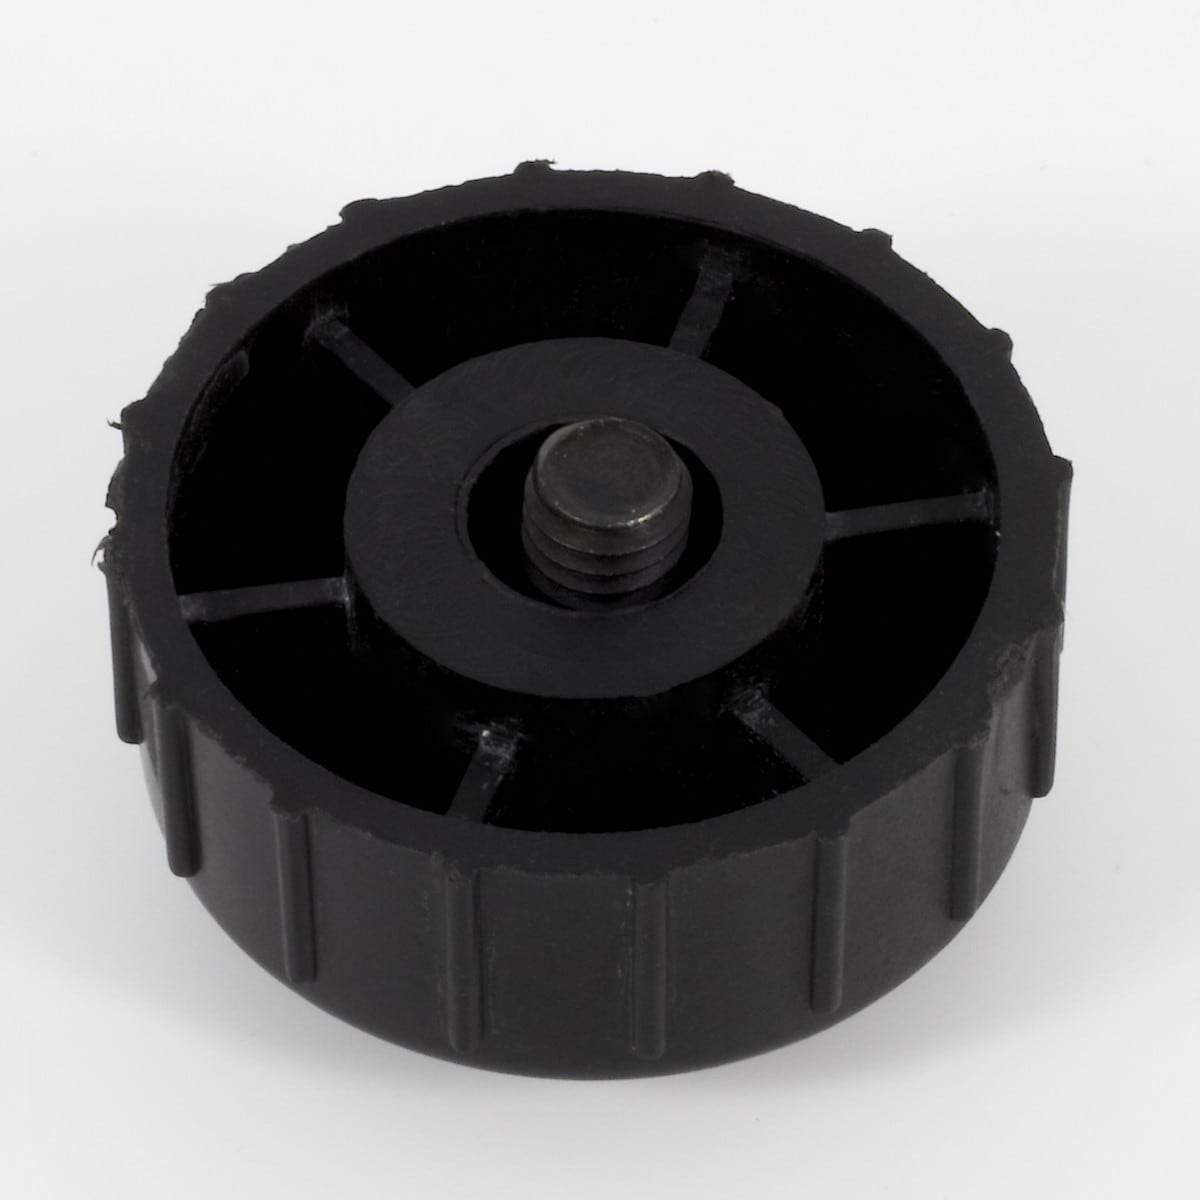 Bolt for trimmer head